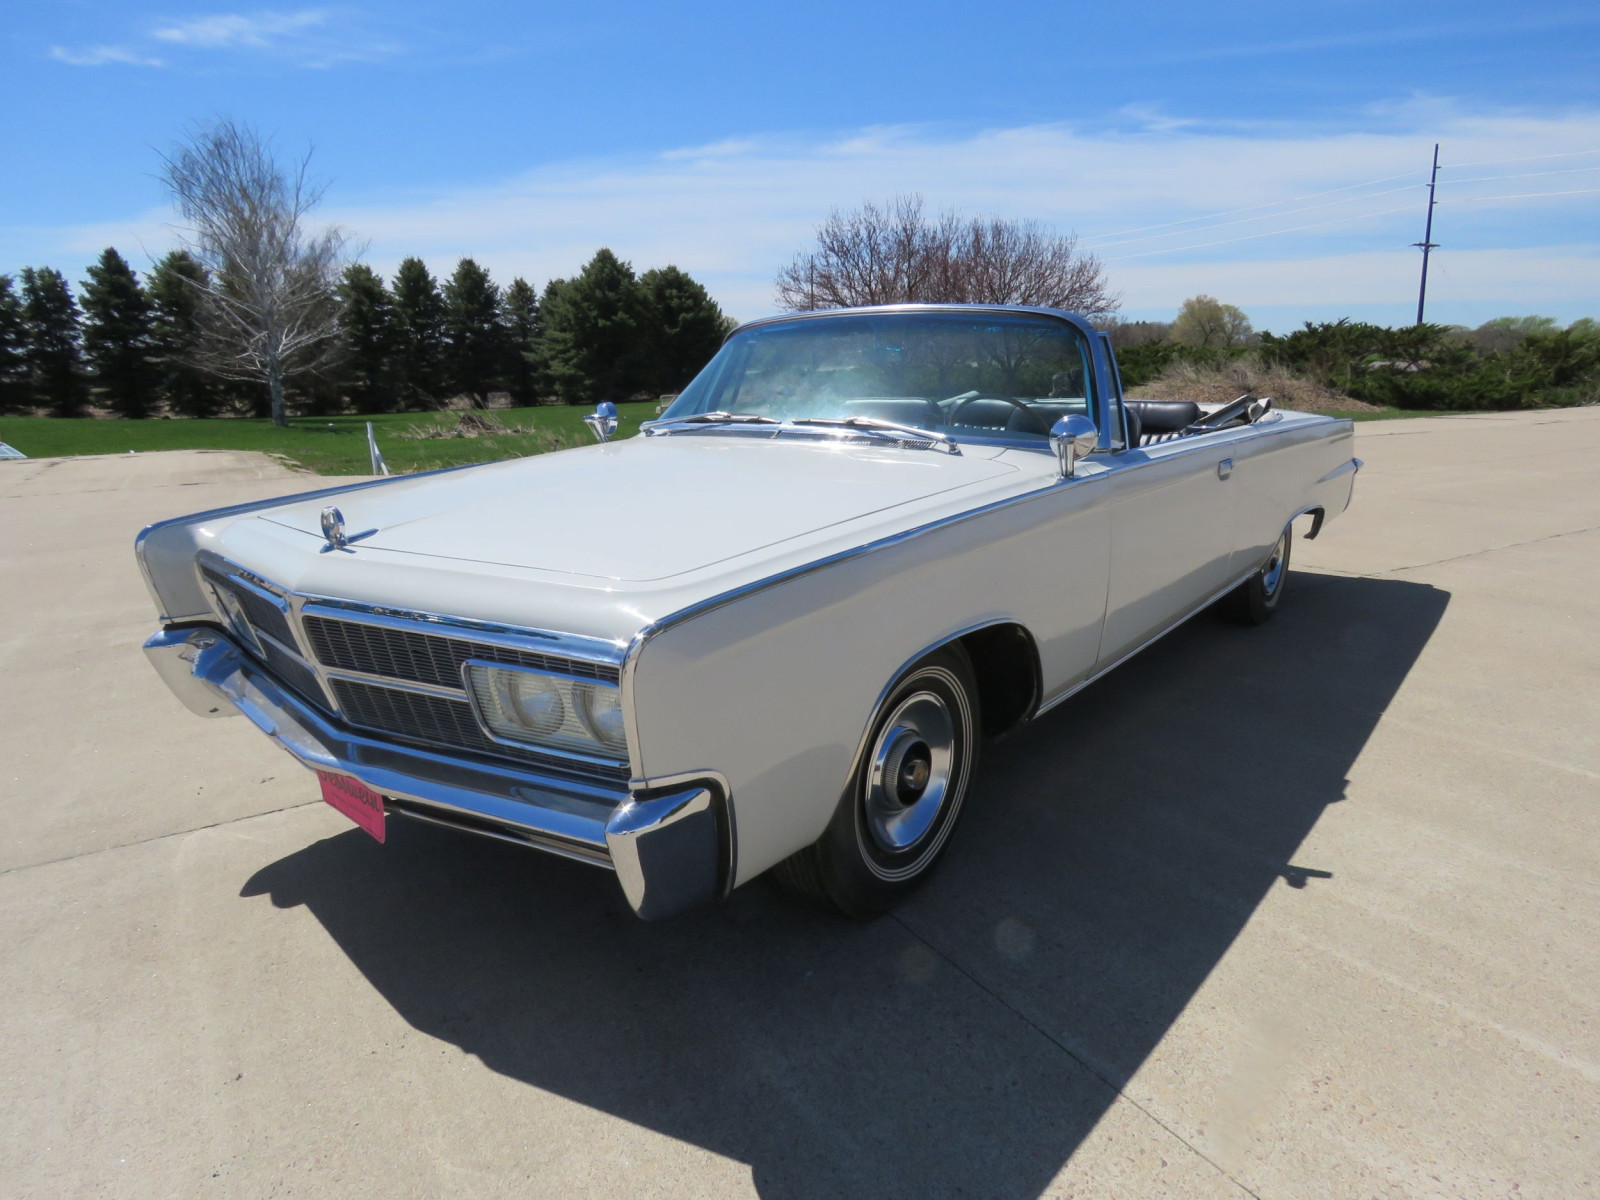 1965 Chrysler Imperial Crown Convertible - Image 3